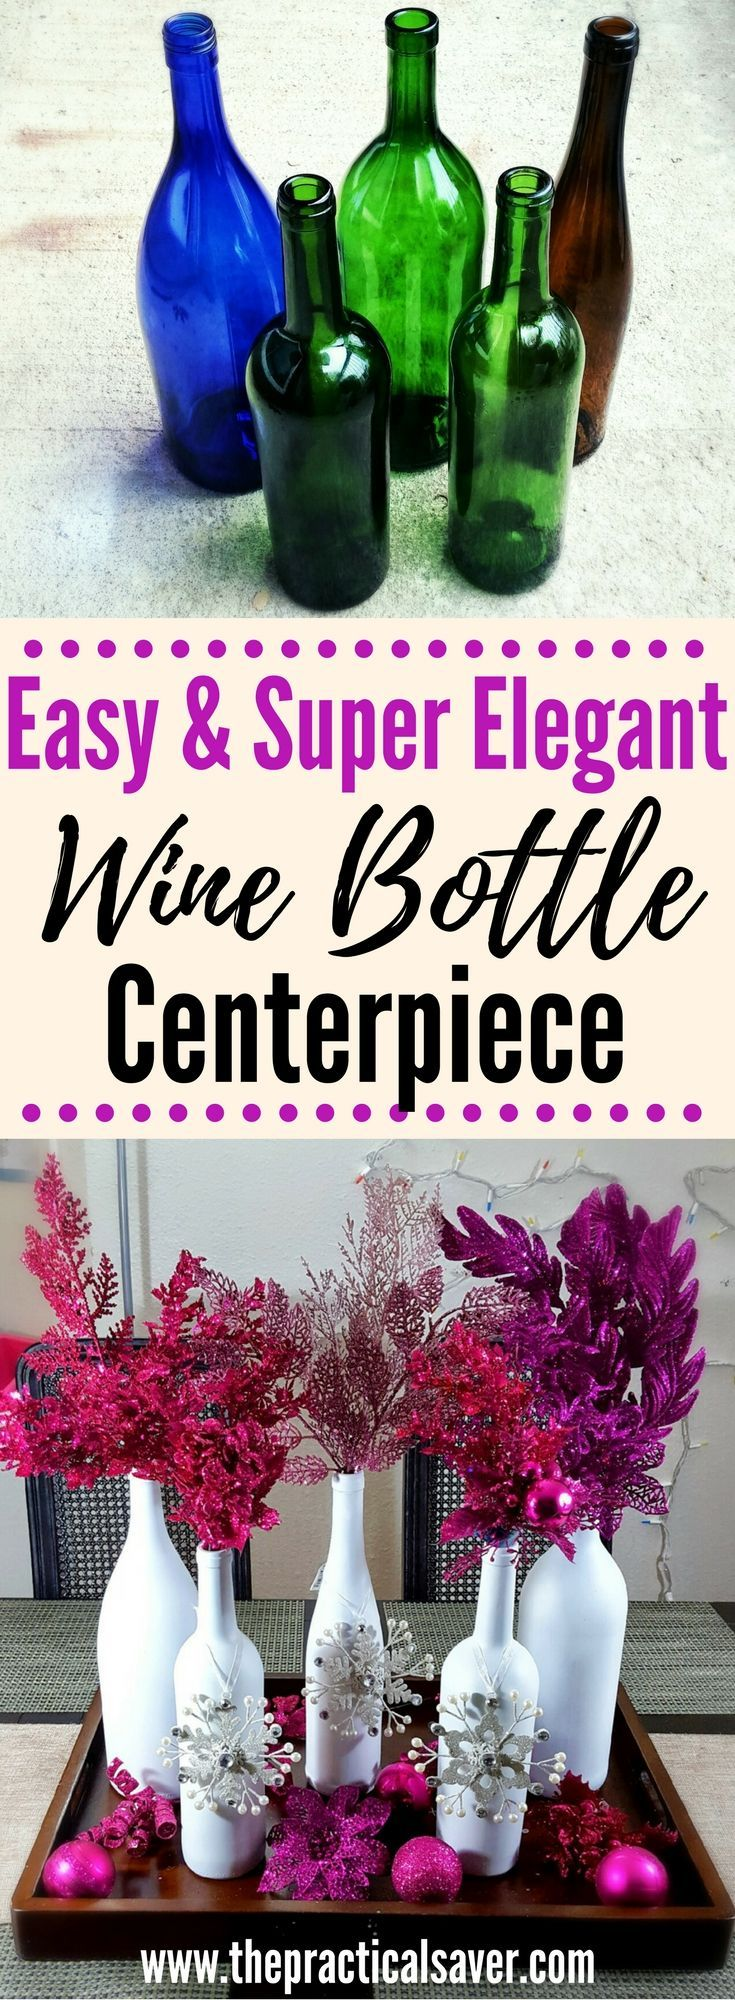 Simple table decoration ideas - Wine Bottle Christmas D Cor Centerpiece Elegant Yet Simple Diy To Beautify Your Table Christmas